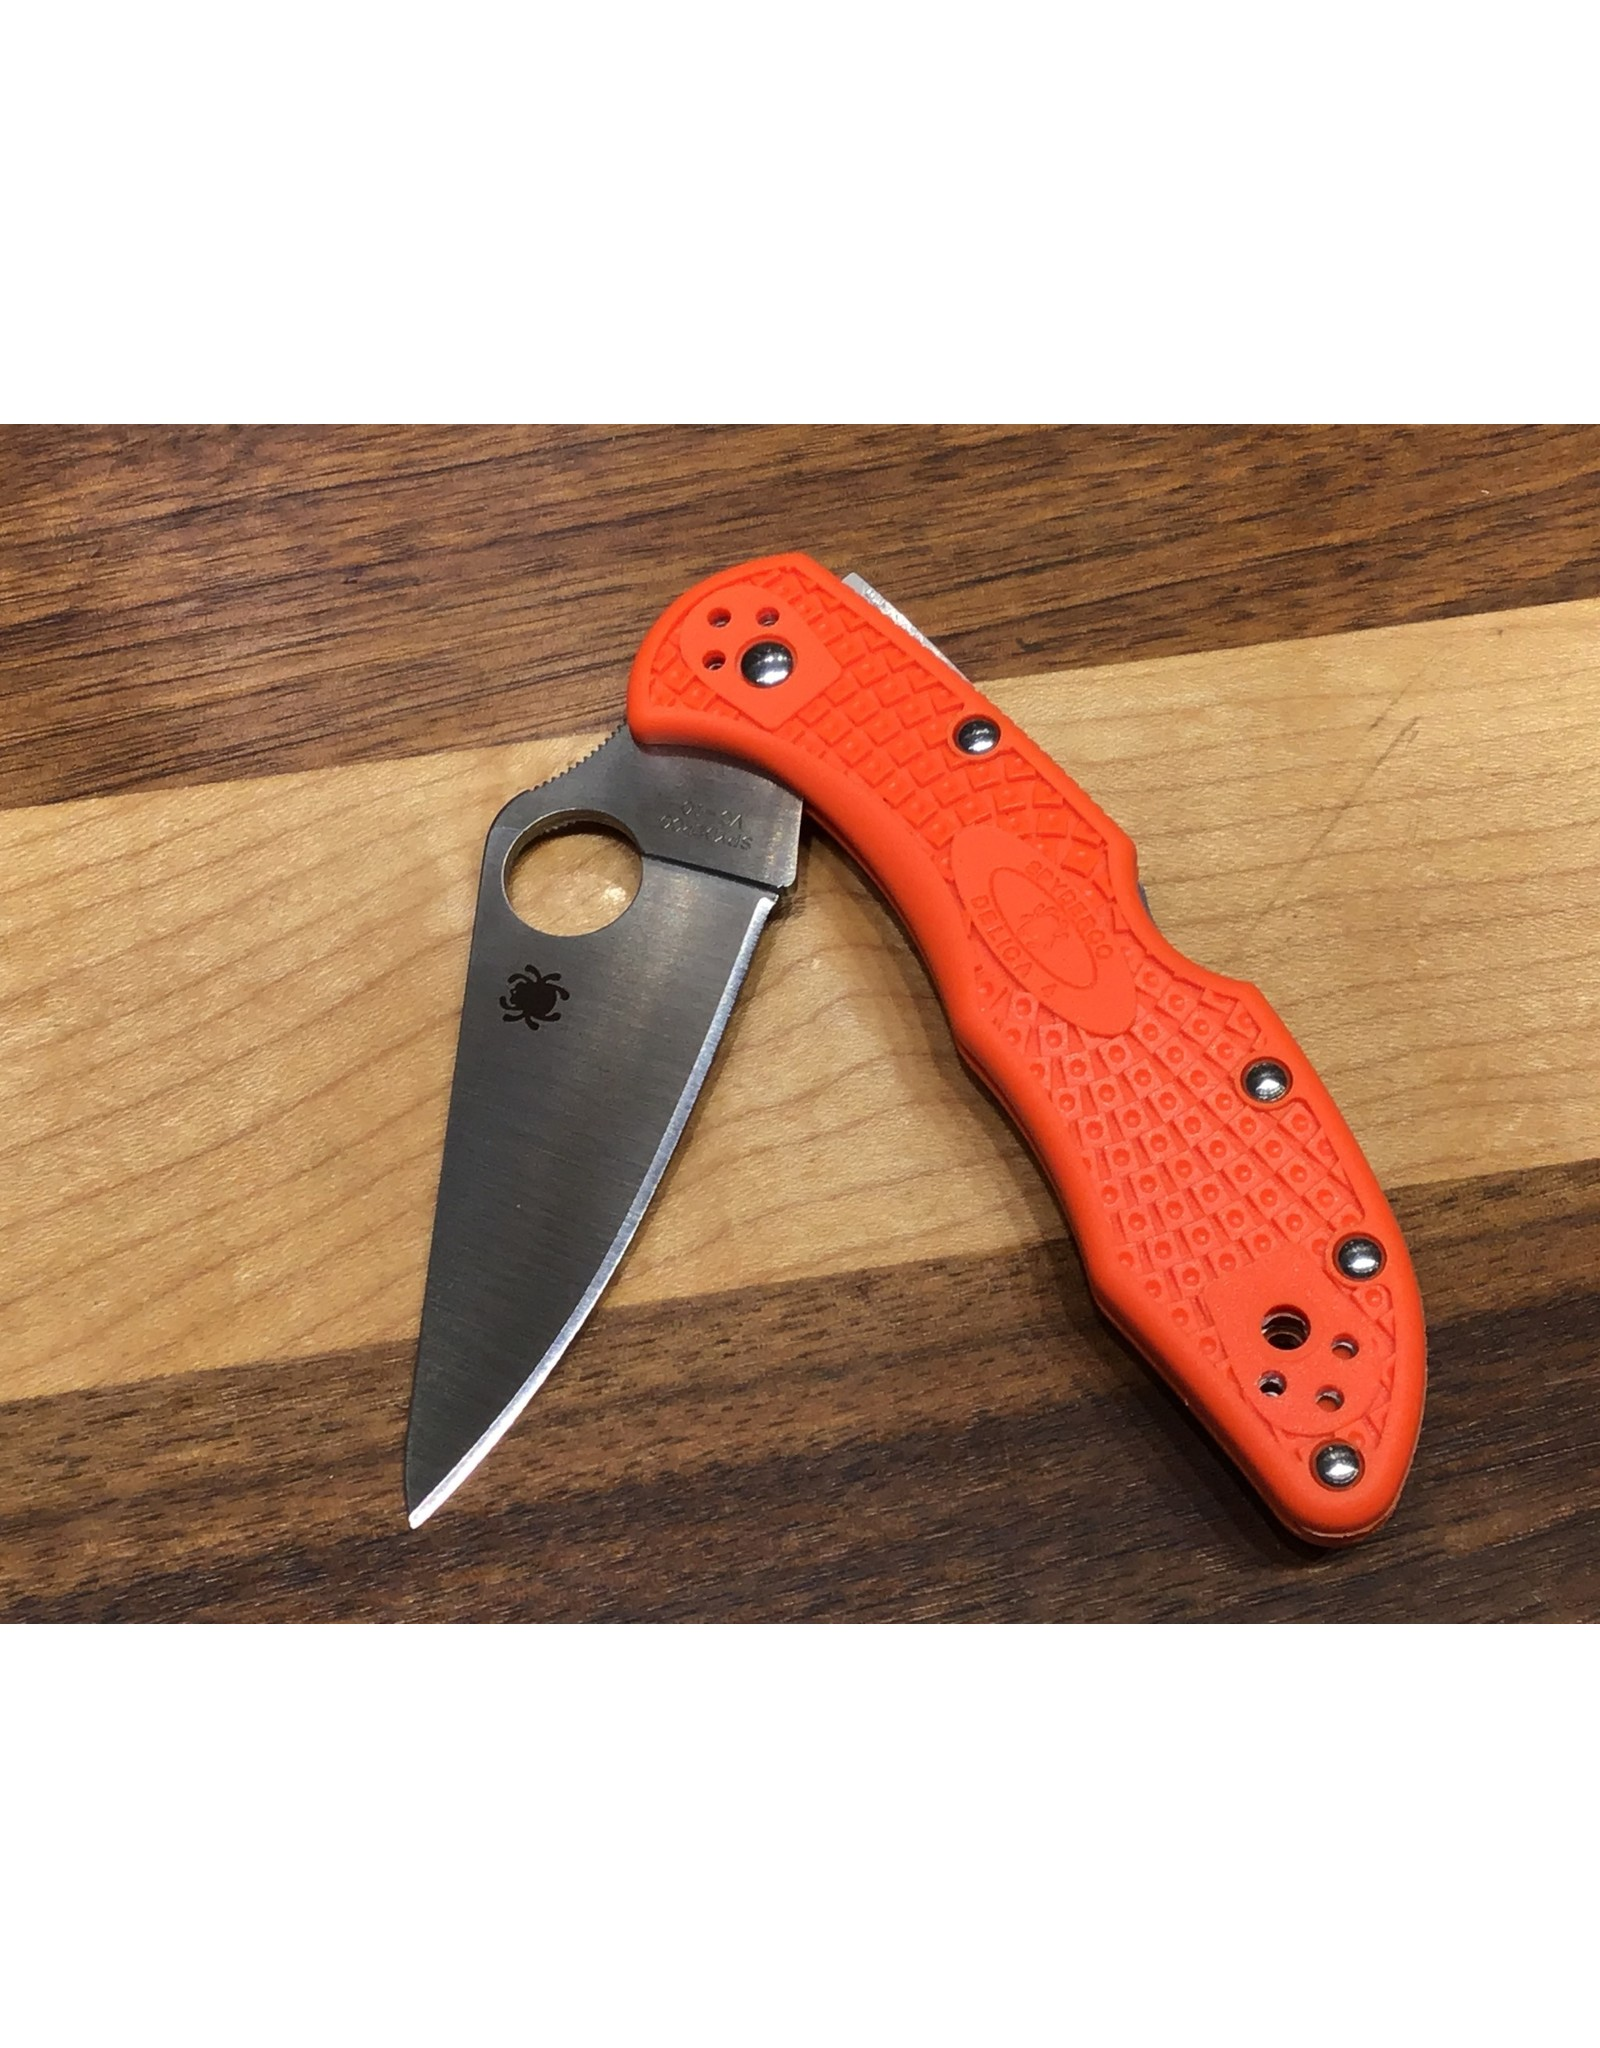 Spyderco Spyderco Delica 4 Orange FRN Flat Ground